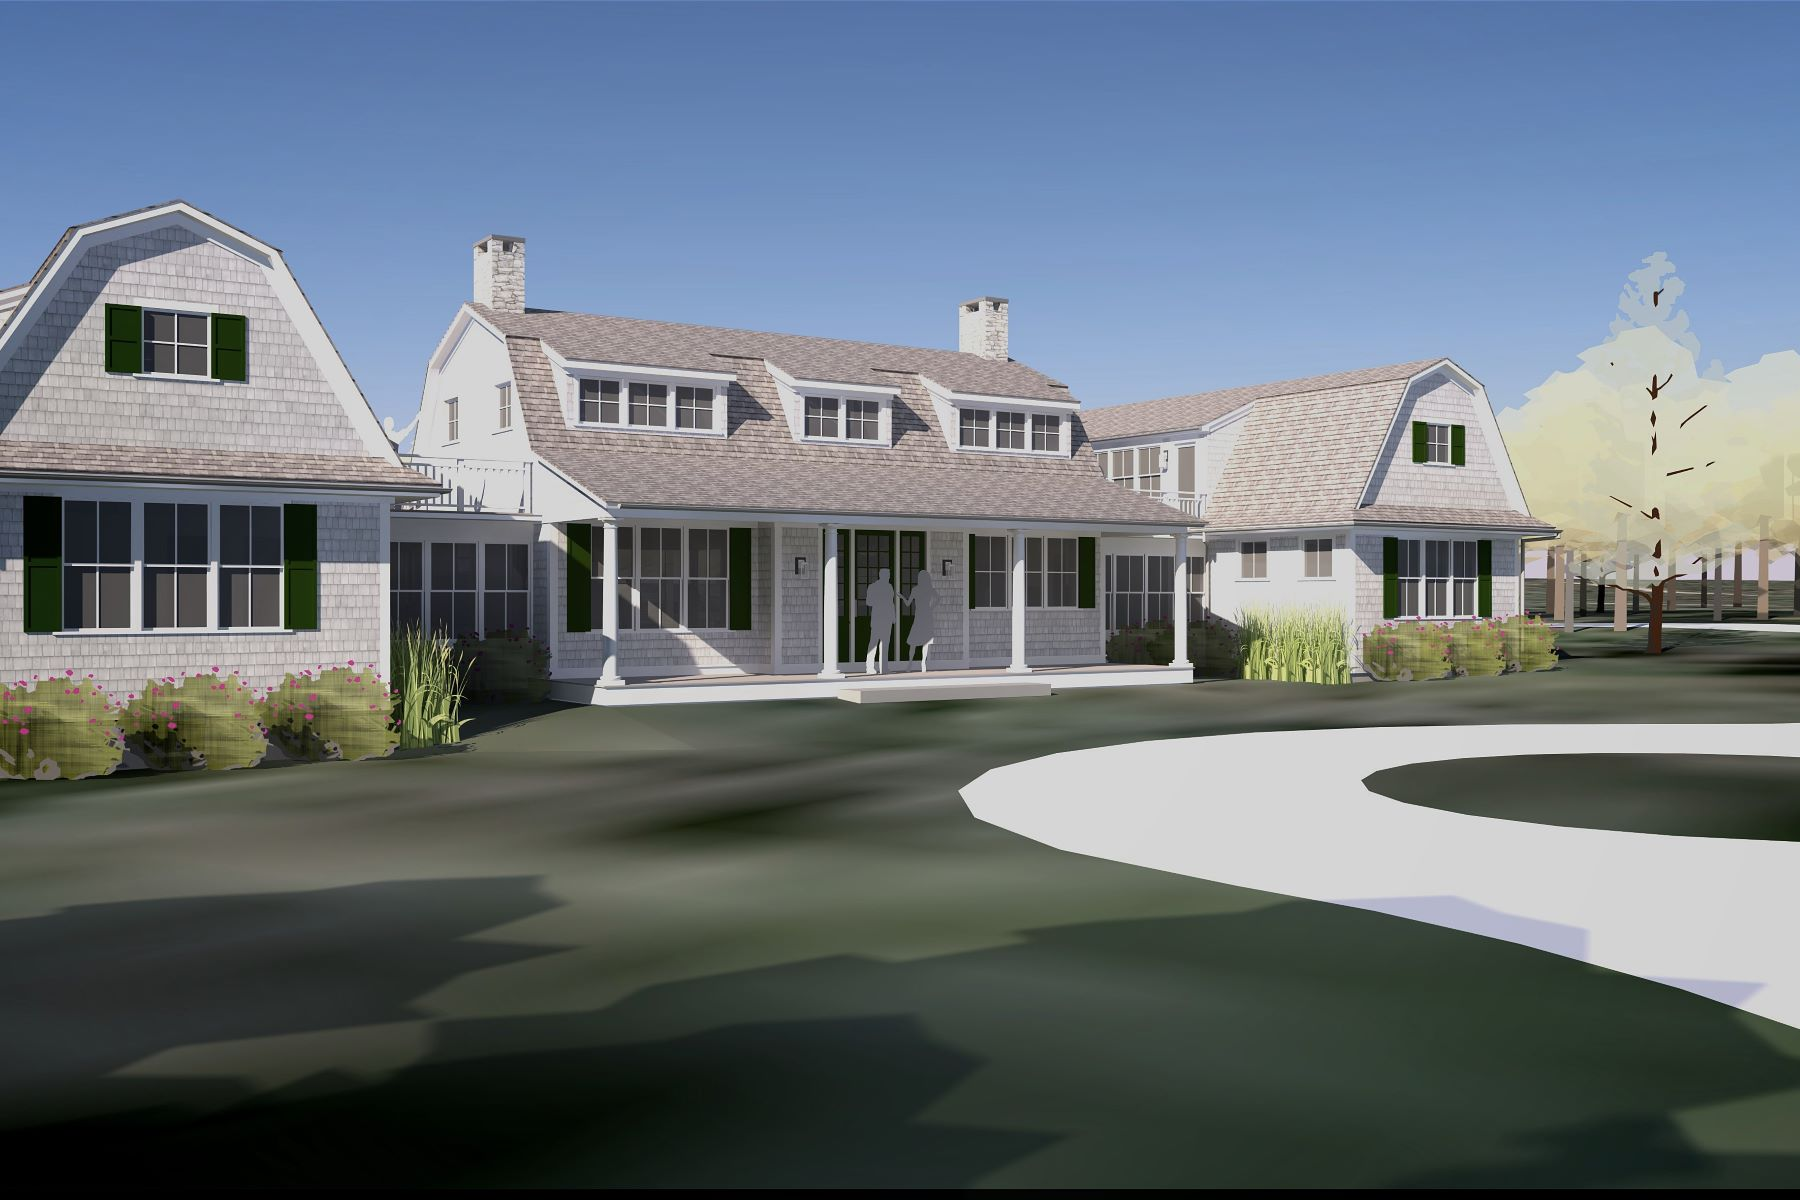 Single Family Home for Sale at Waterview Farm Neck Home 27 Brush Island Lane Oak Bluffs, Massachusetts, 02557 United States